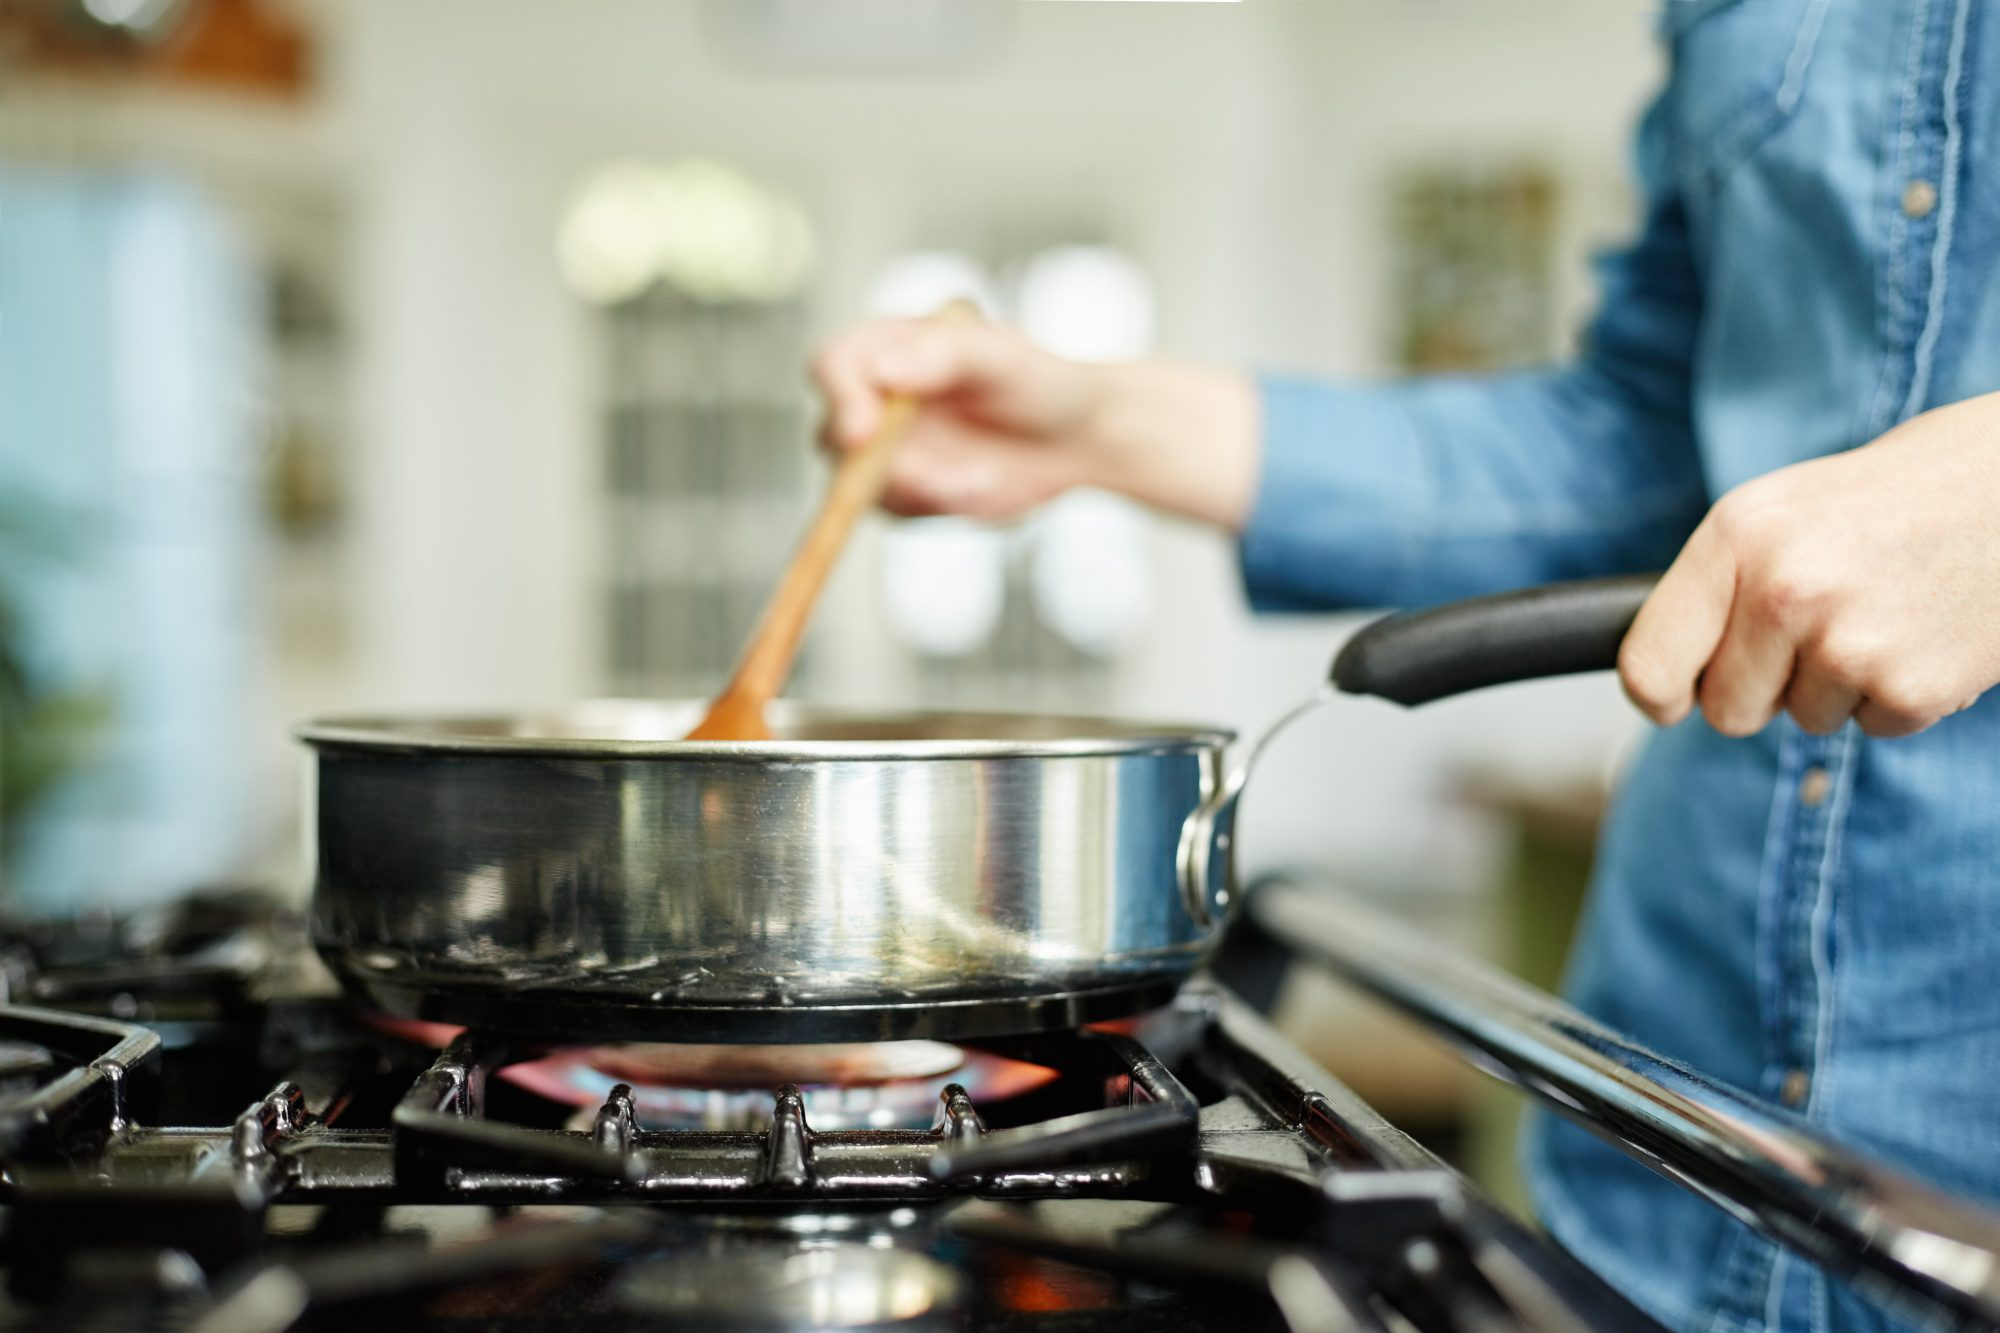 woman cooking on gas stove